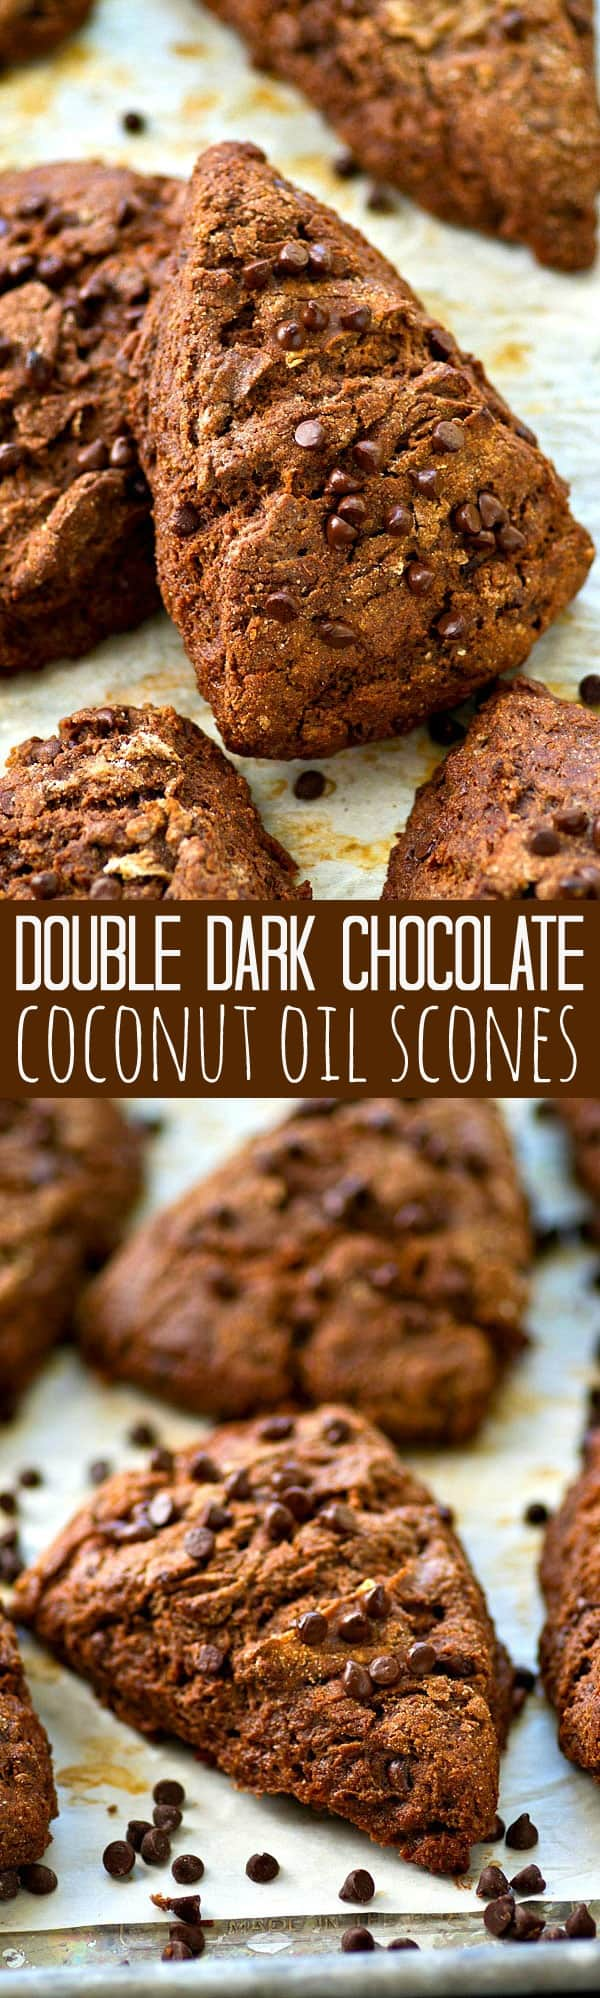 Packed with a double-whammy of chocolate and SO easy to whip up, these flaky coconut oil scones will quickly become a weekend breakfast favorite. Make a double batch for the freezer!